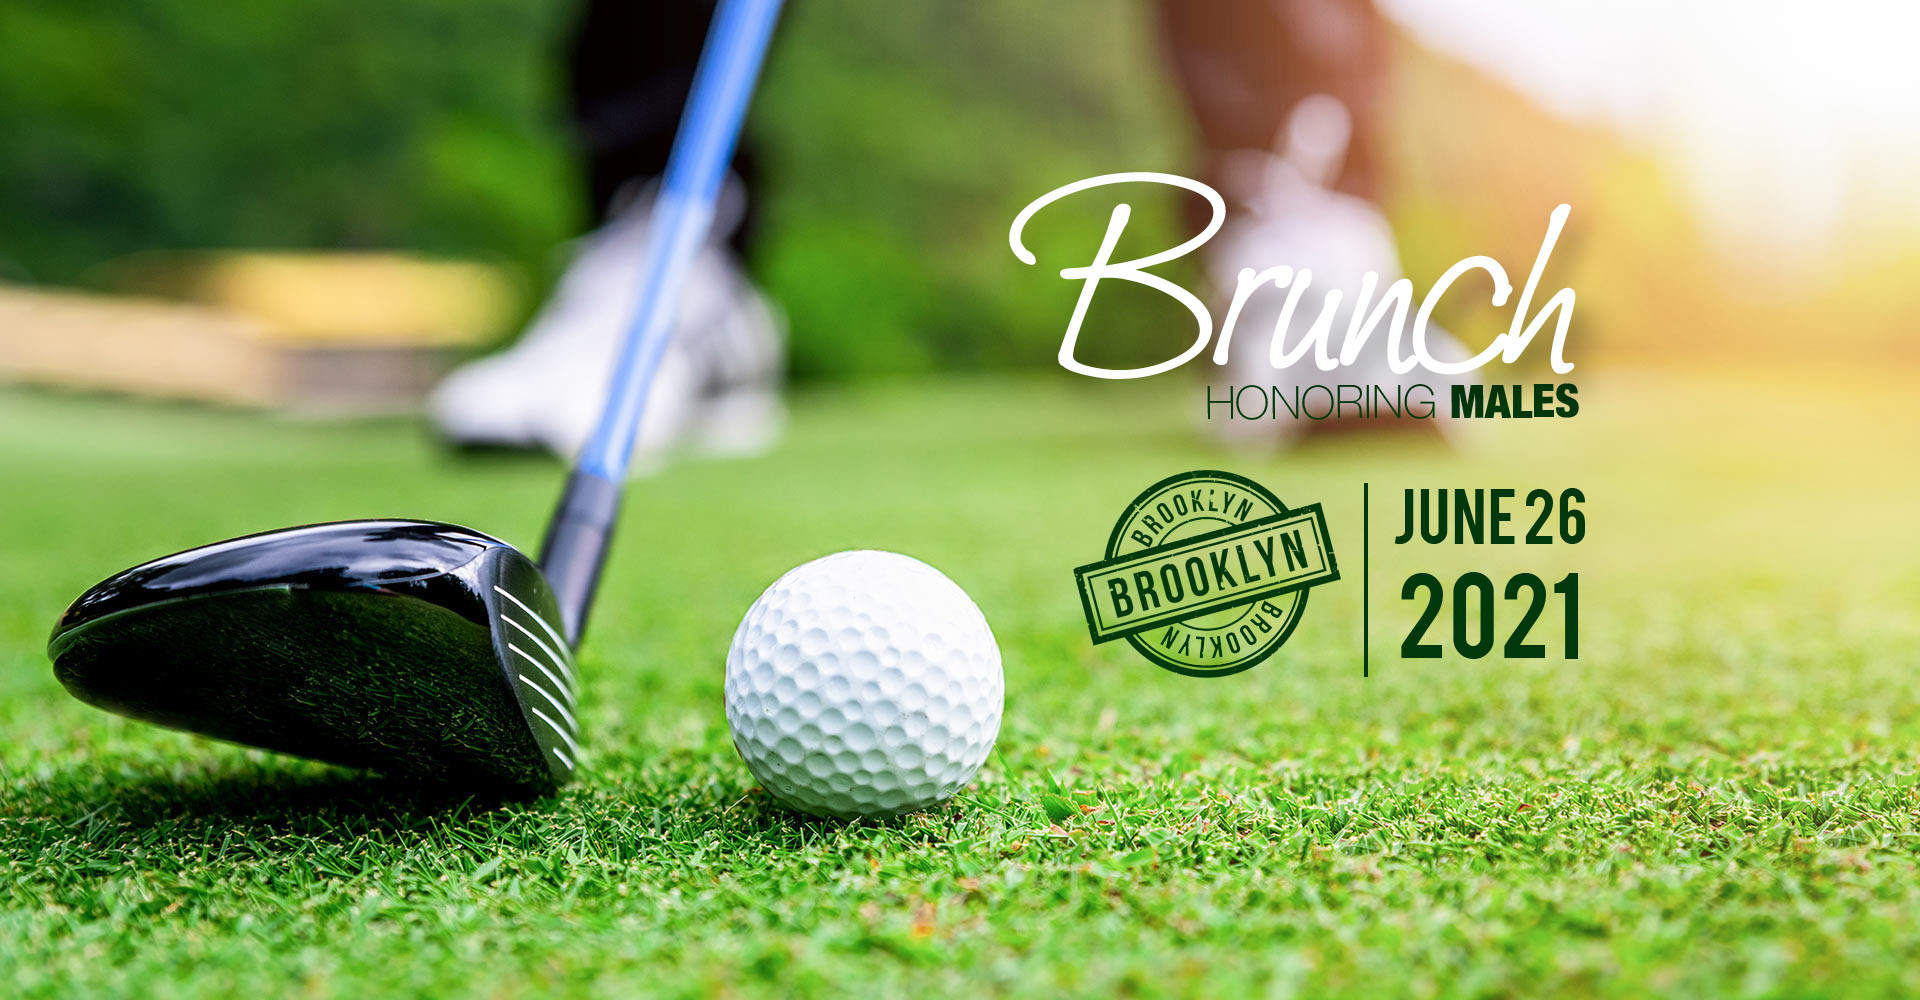 Brunch honoring males 2021